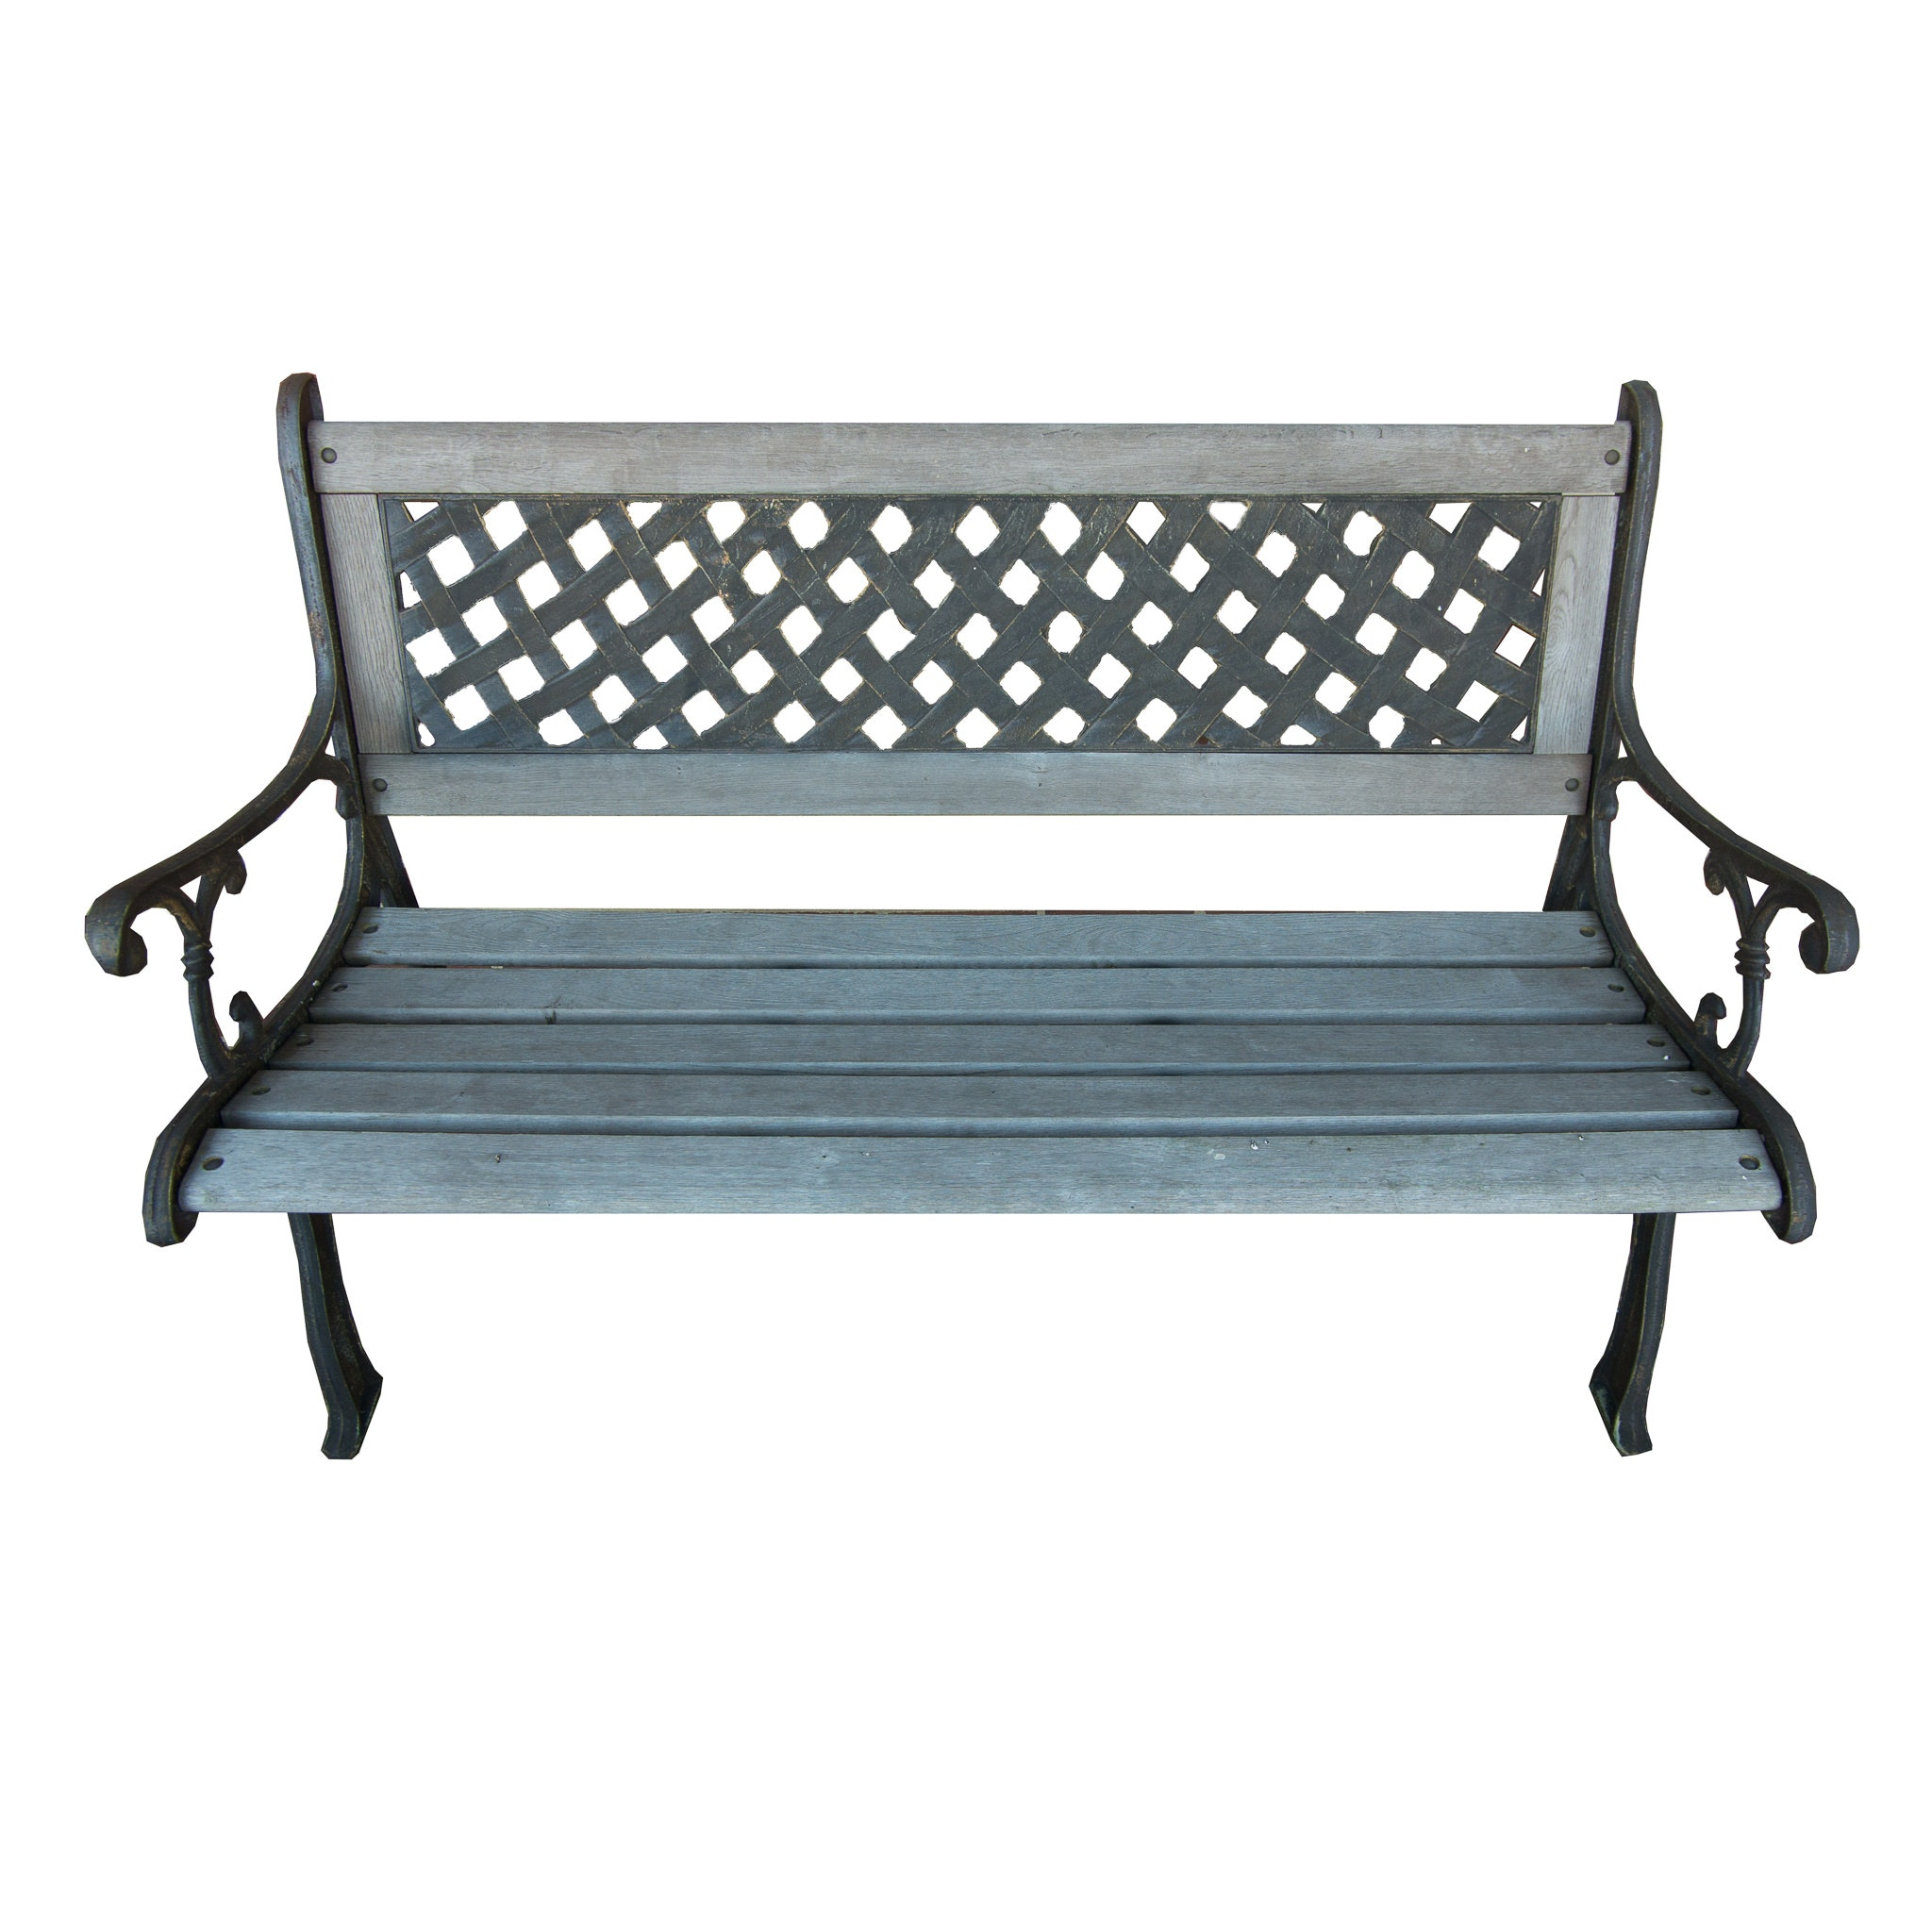 Wood and Iron Park Bench